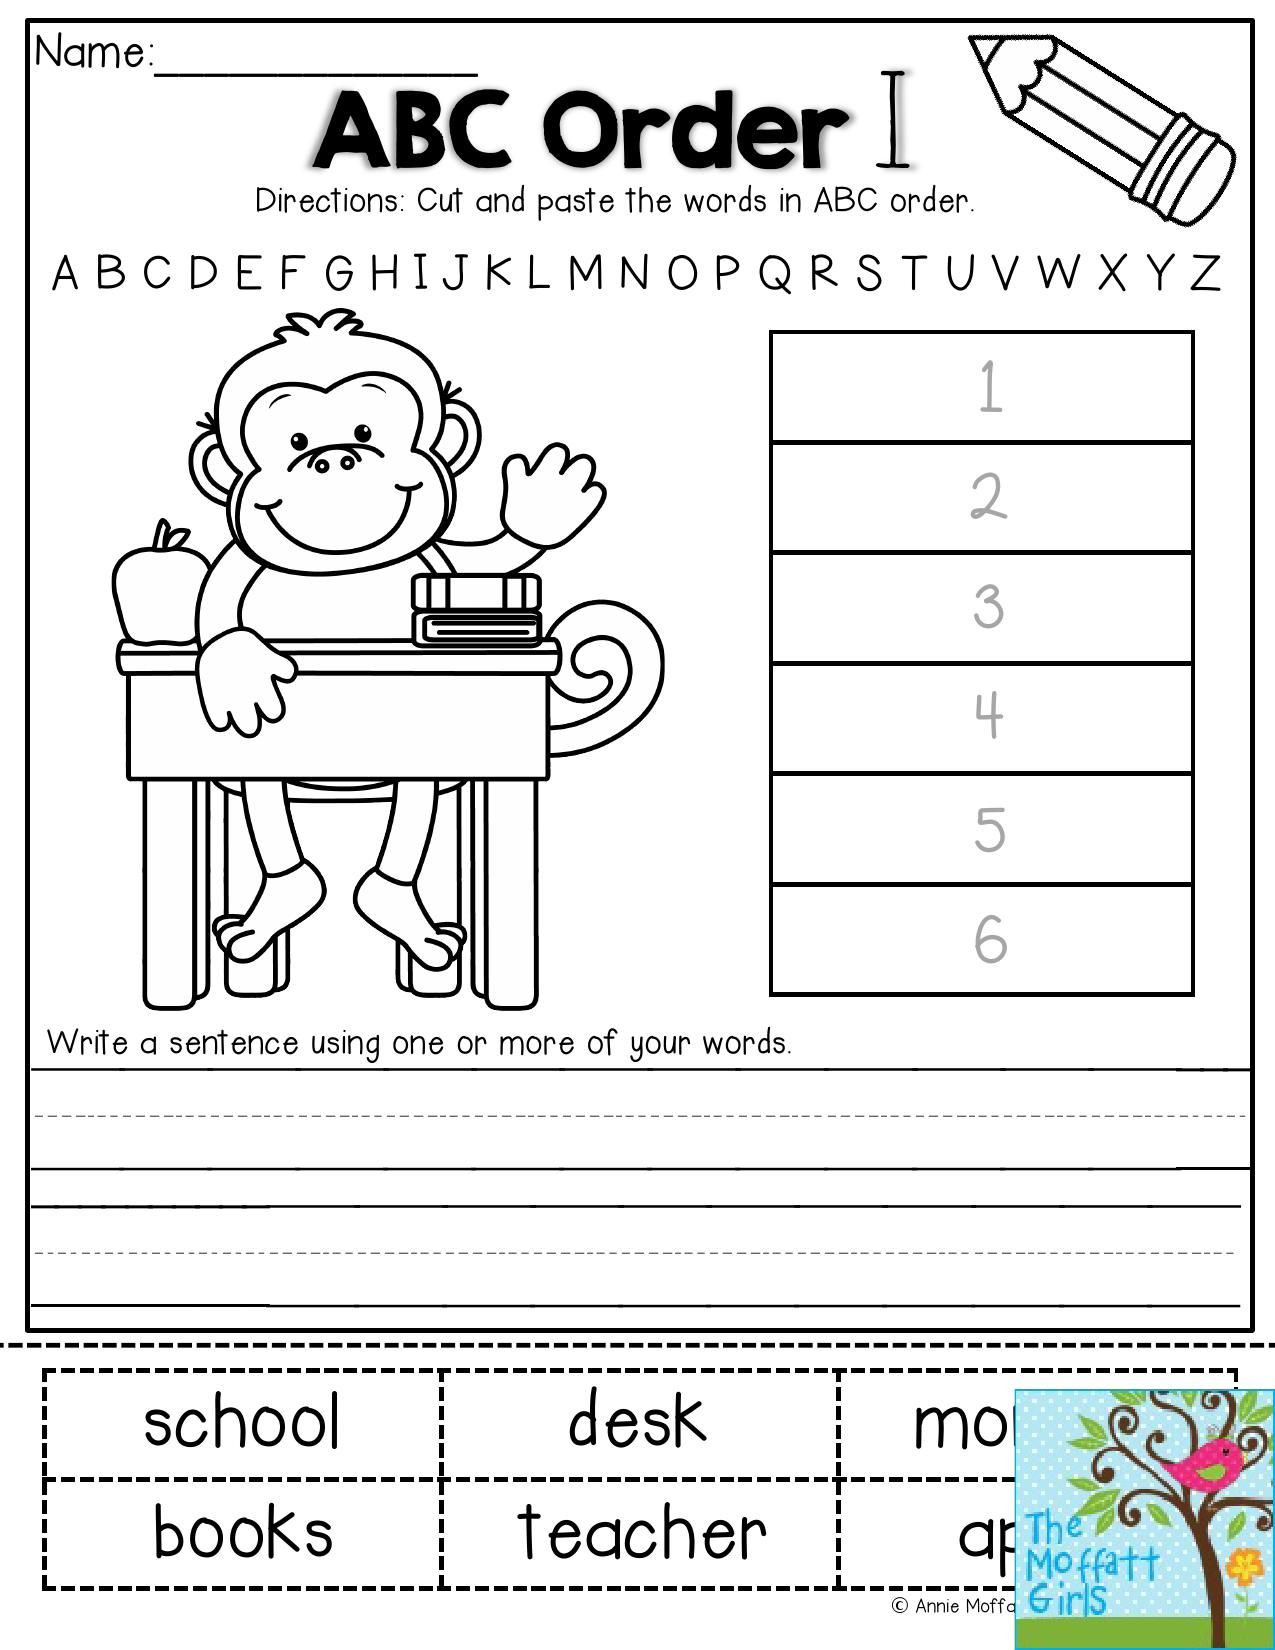 Alphabetical order Worksheets 2nd Grade Back to School Worksheets 2nd Grade for Download Back to